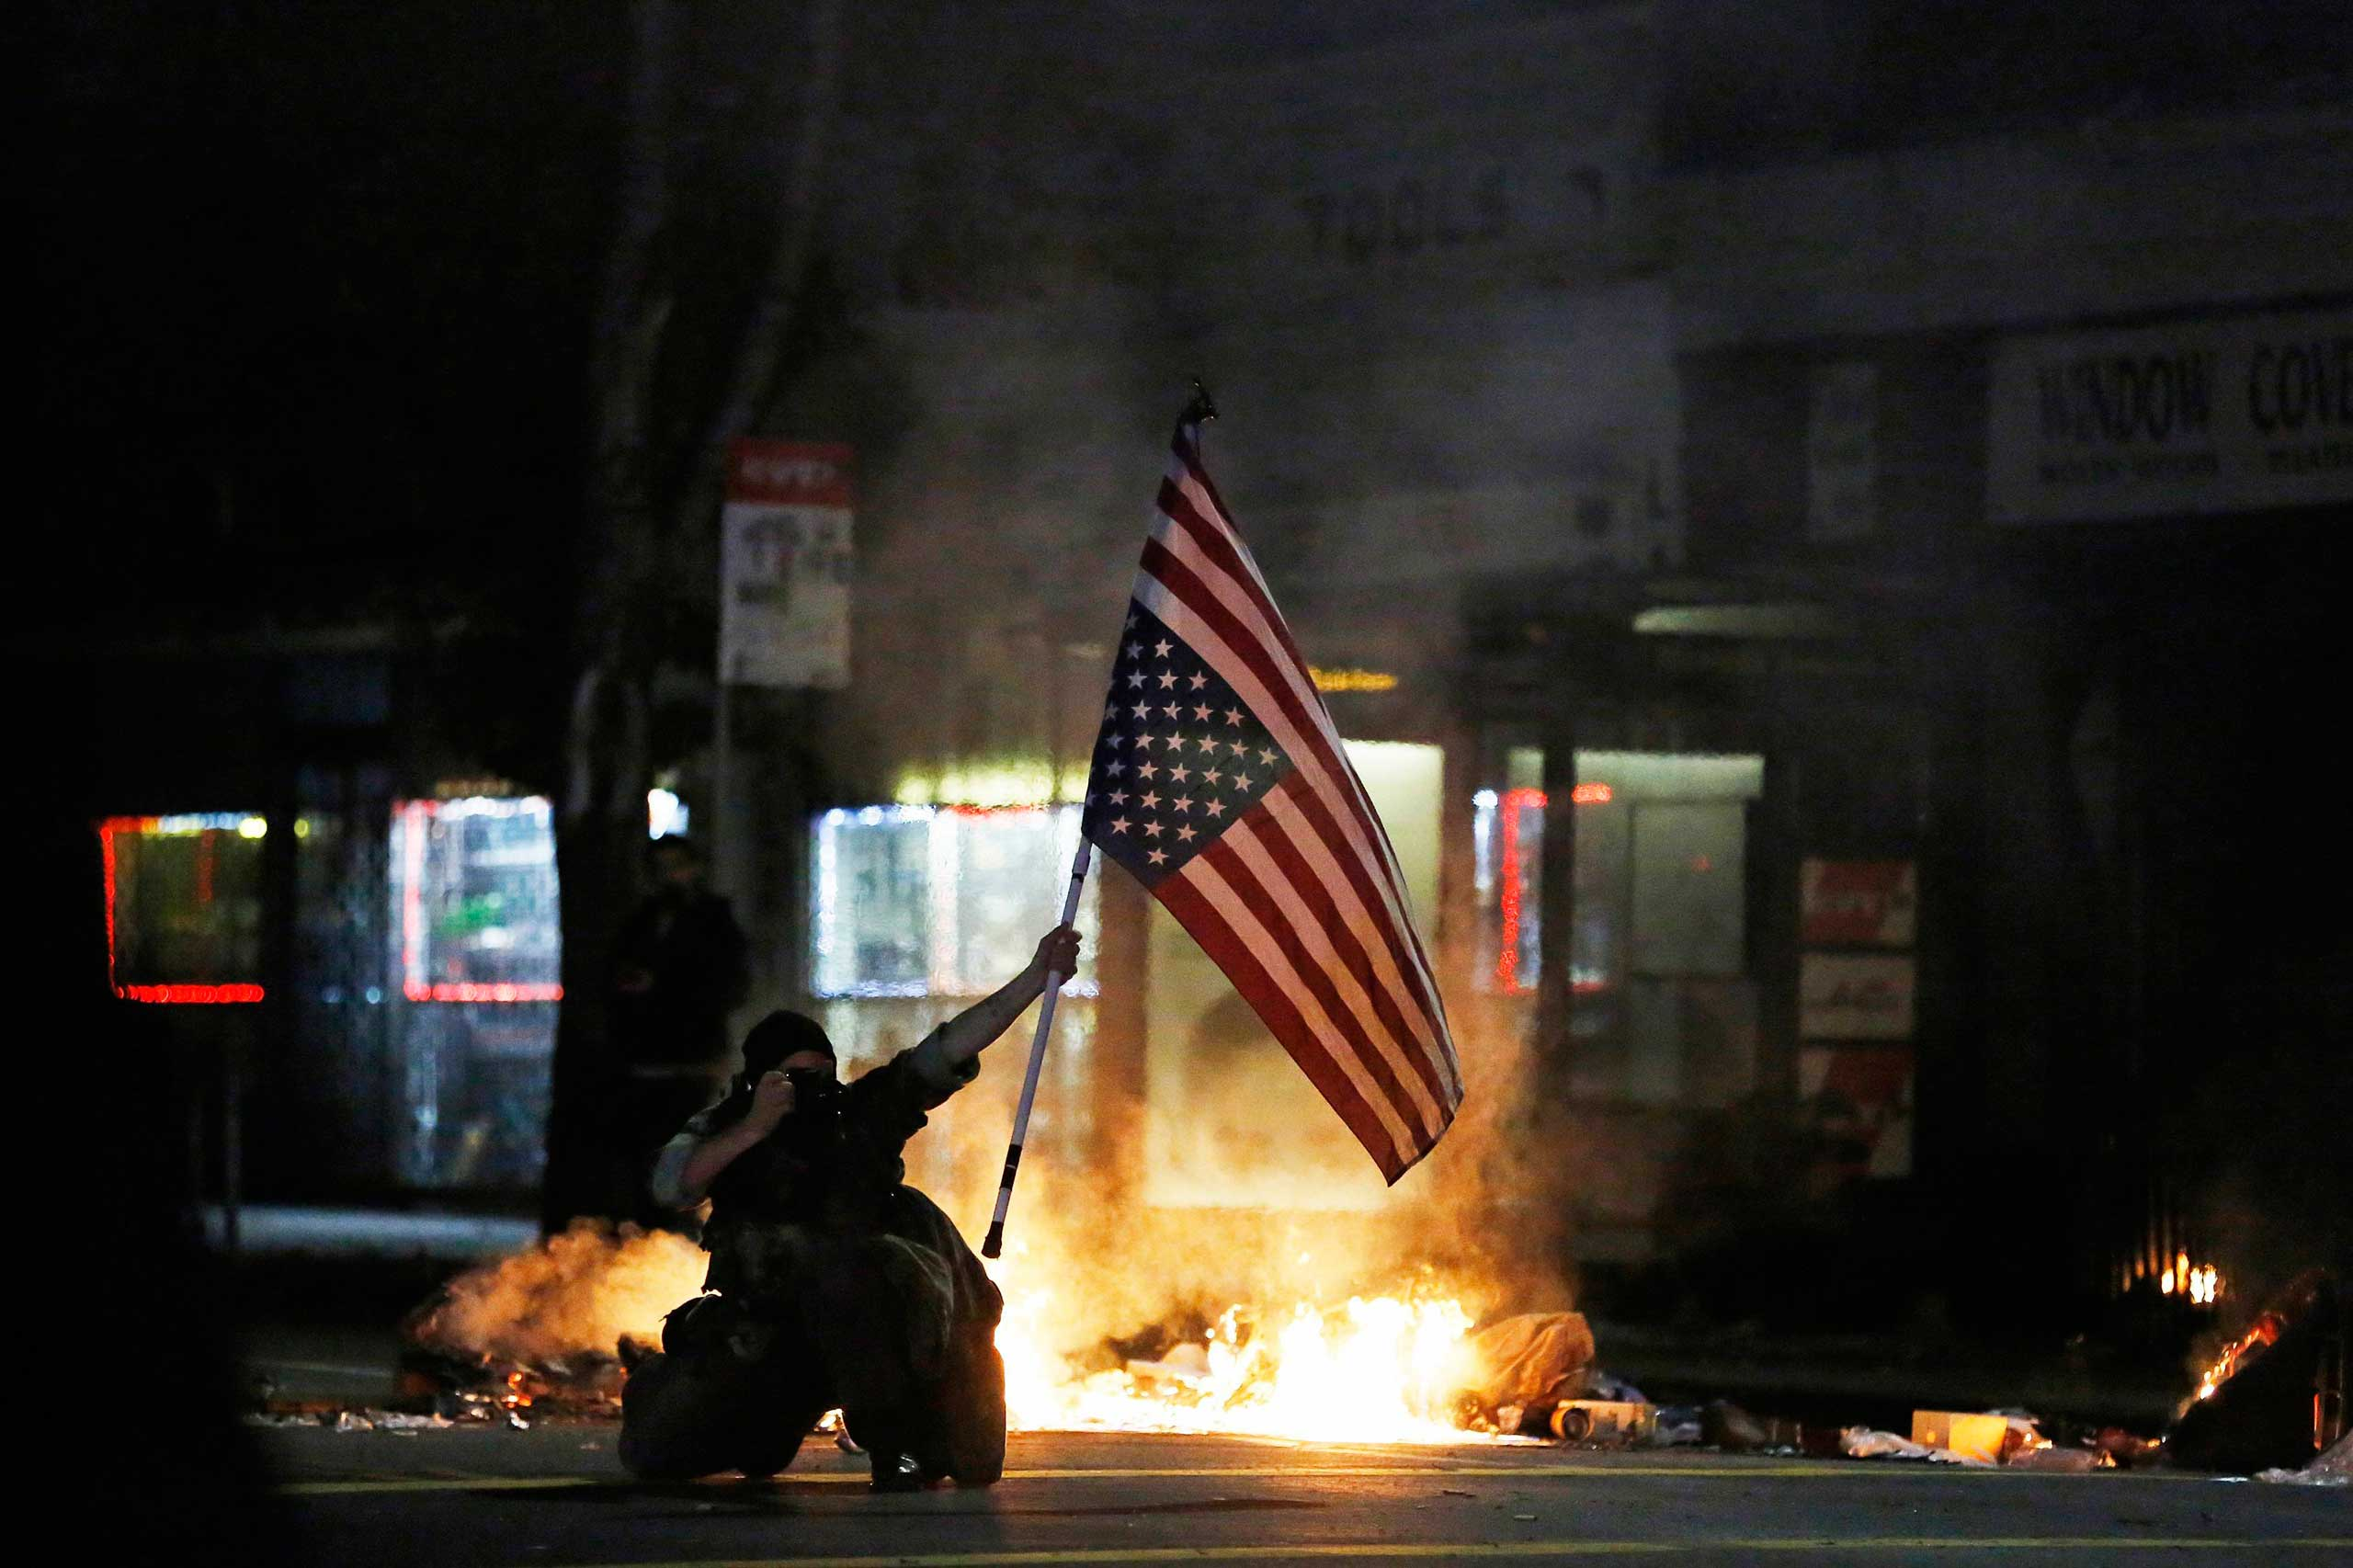 A demonstrator takes a photograph while holding an upside down U.S. flag during a demonstration in Berkeley, Calif. on Dec. 8, 2014.